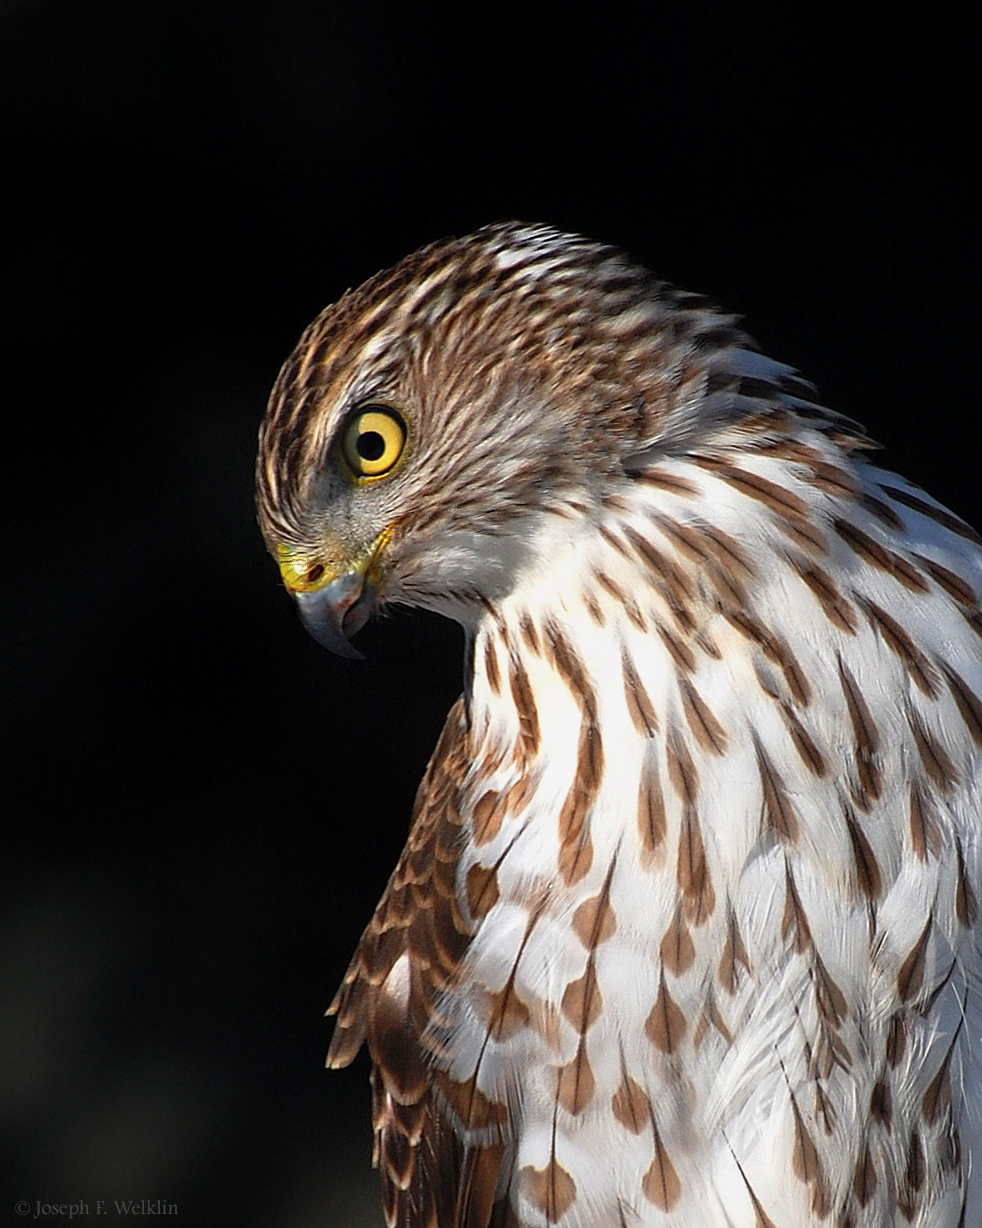 Juvenile Cooper's hawk. Photographed in Noblesville, Indiana.